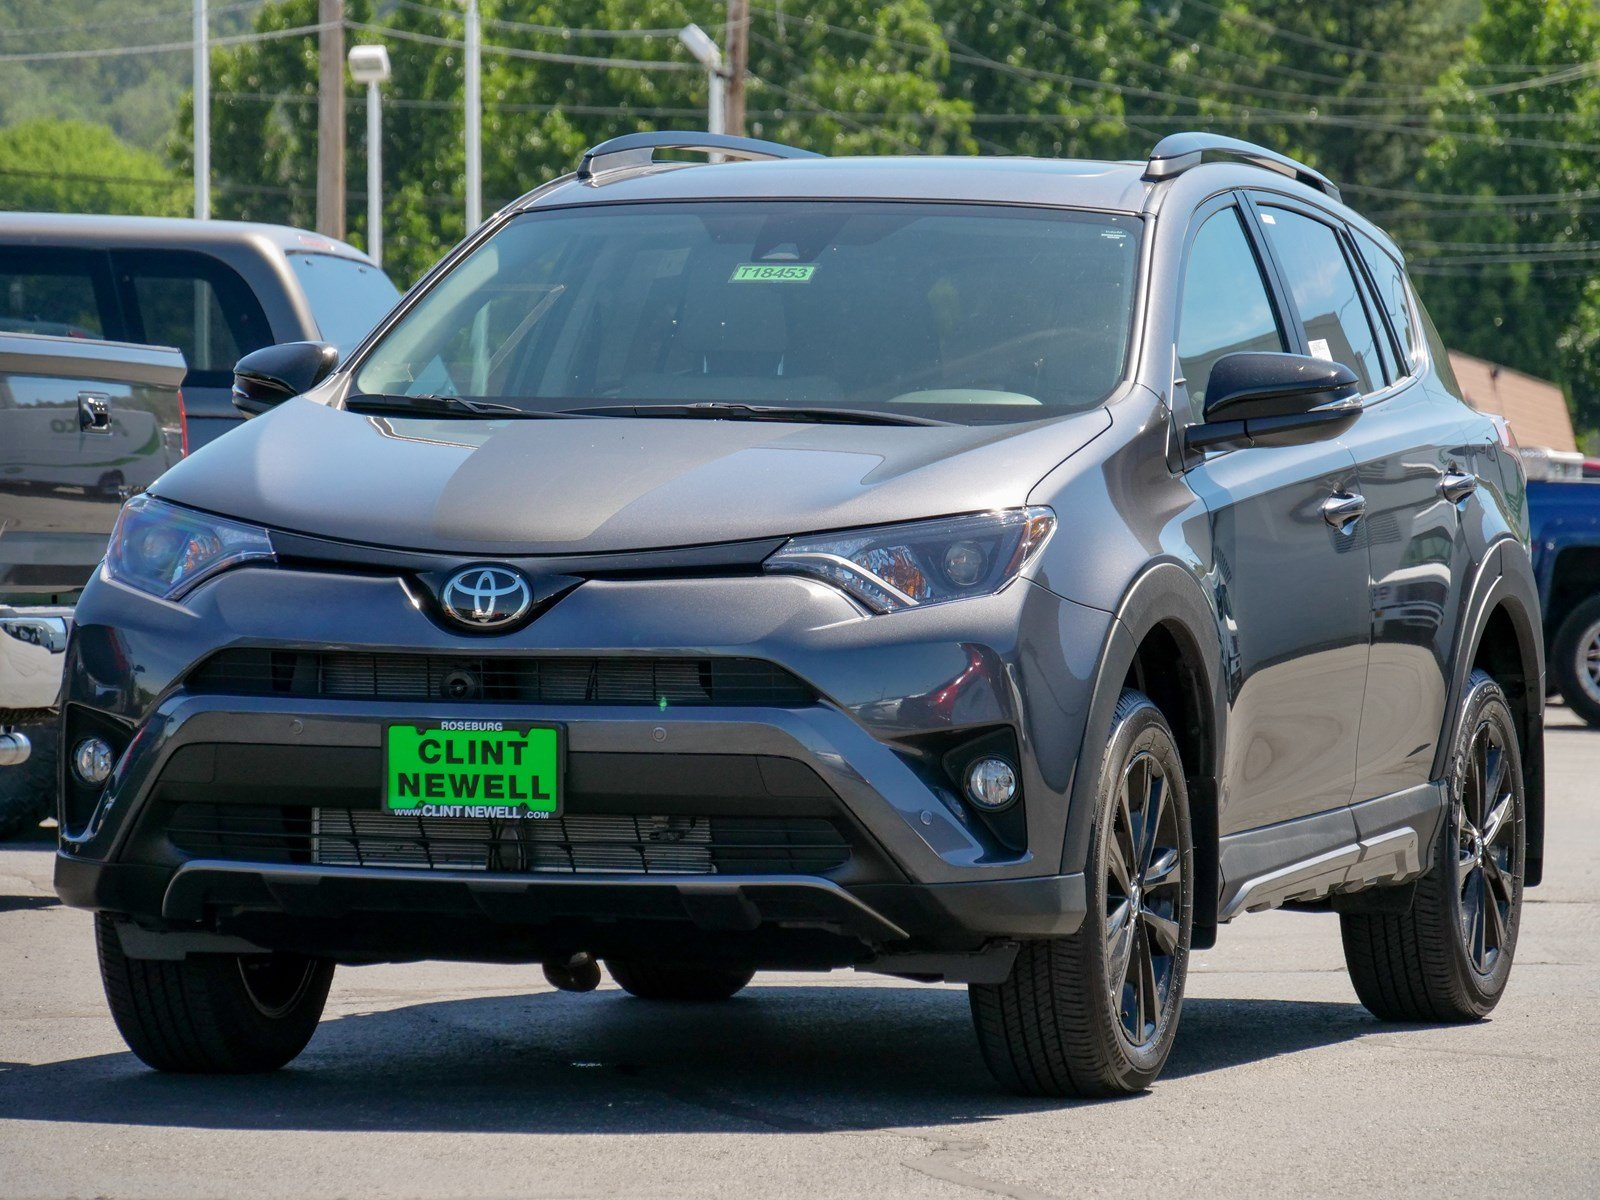 Toyota RAV4 Service Manual: Electronic power steering system